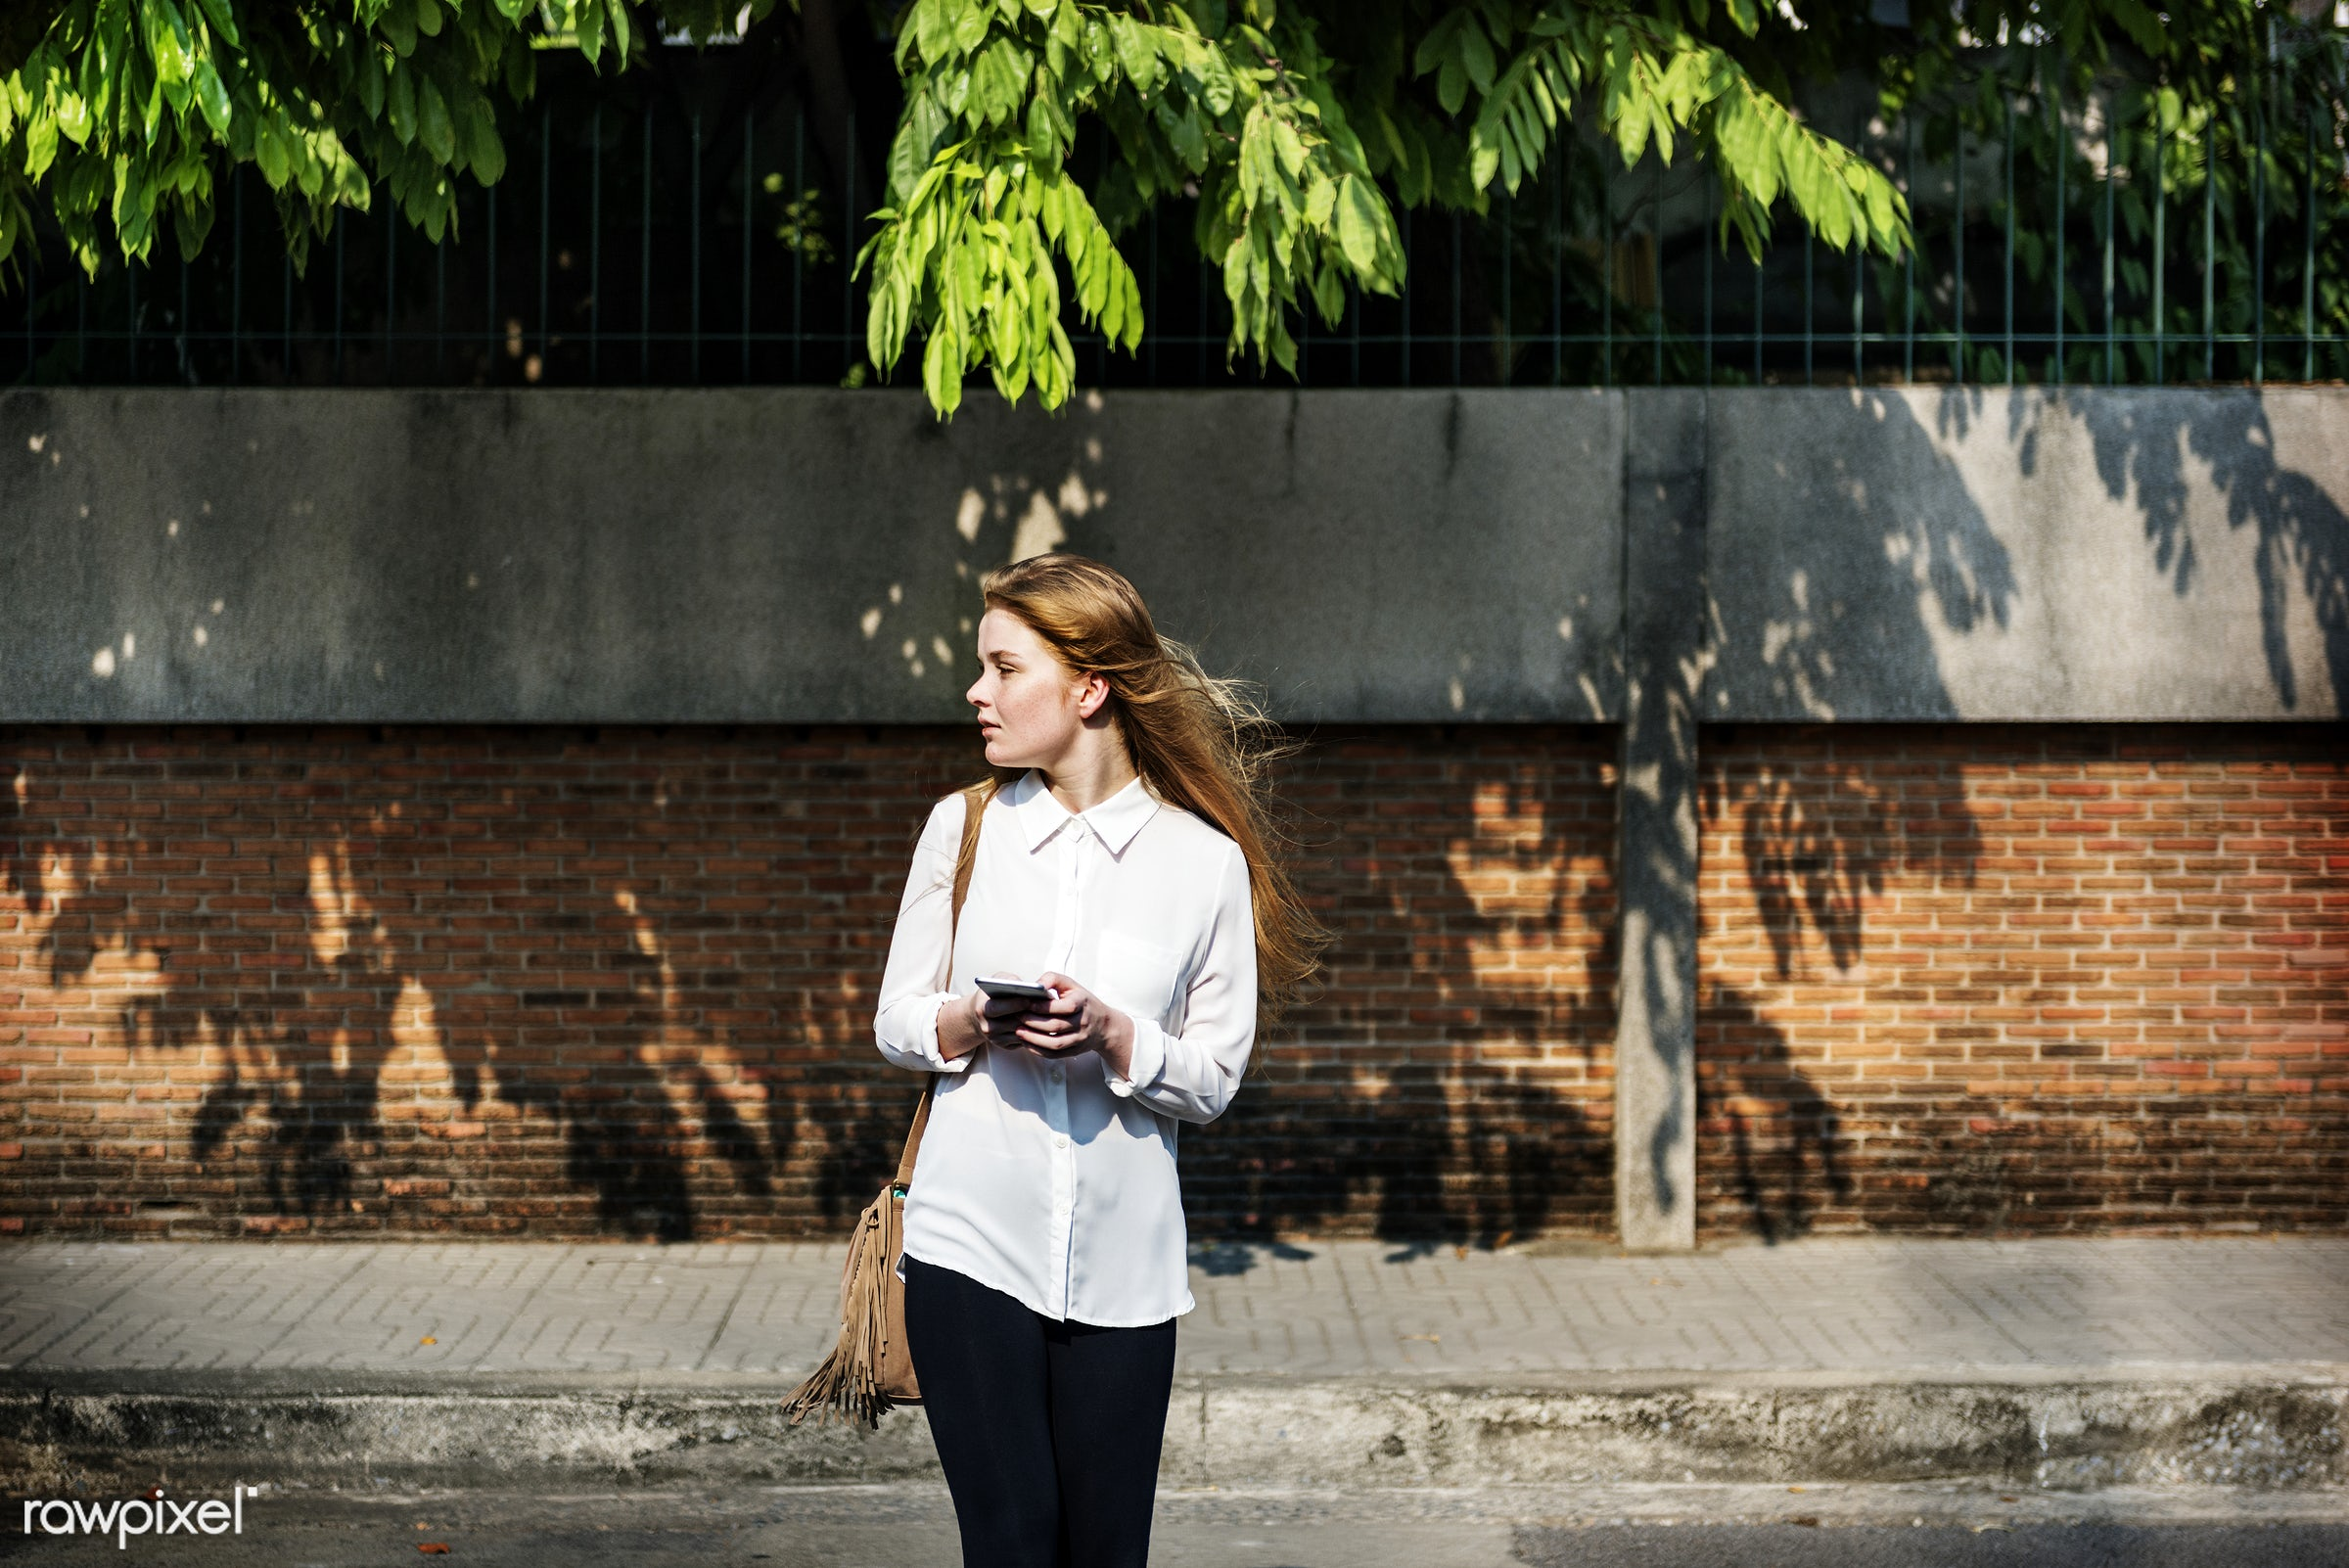 Casual Cheerful Girl Alone Outdoor Recreation Concept - alone, caucasian, cellphone, cheerful, communication, connection,...